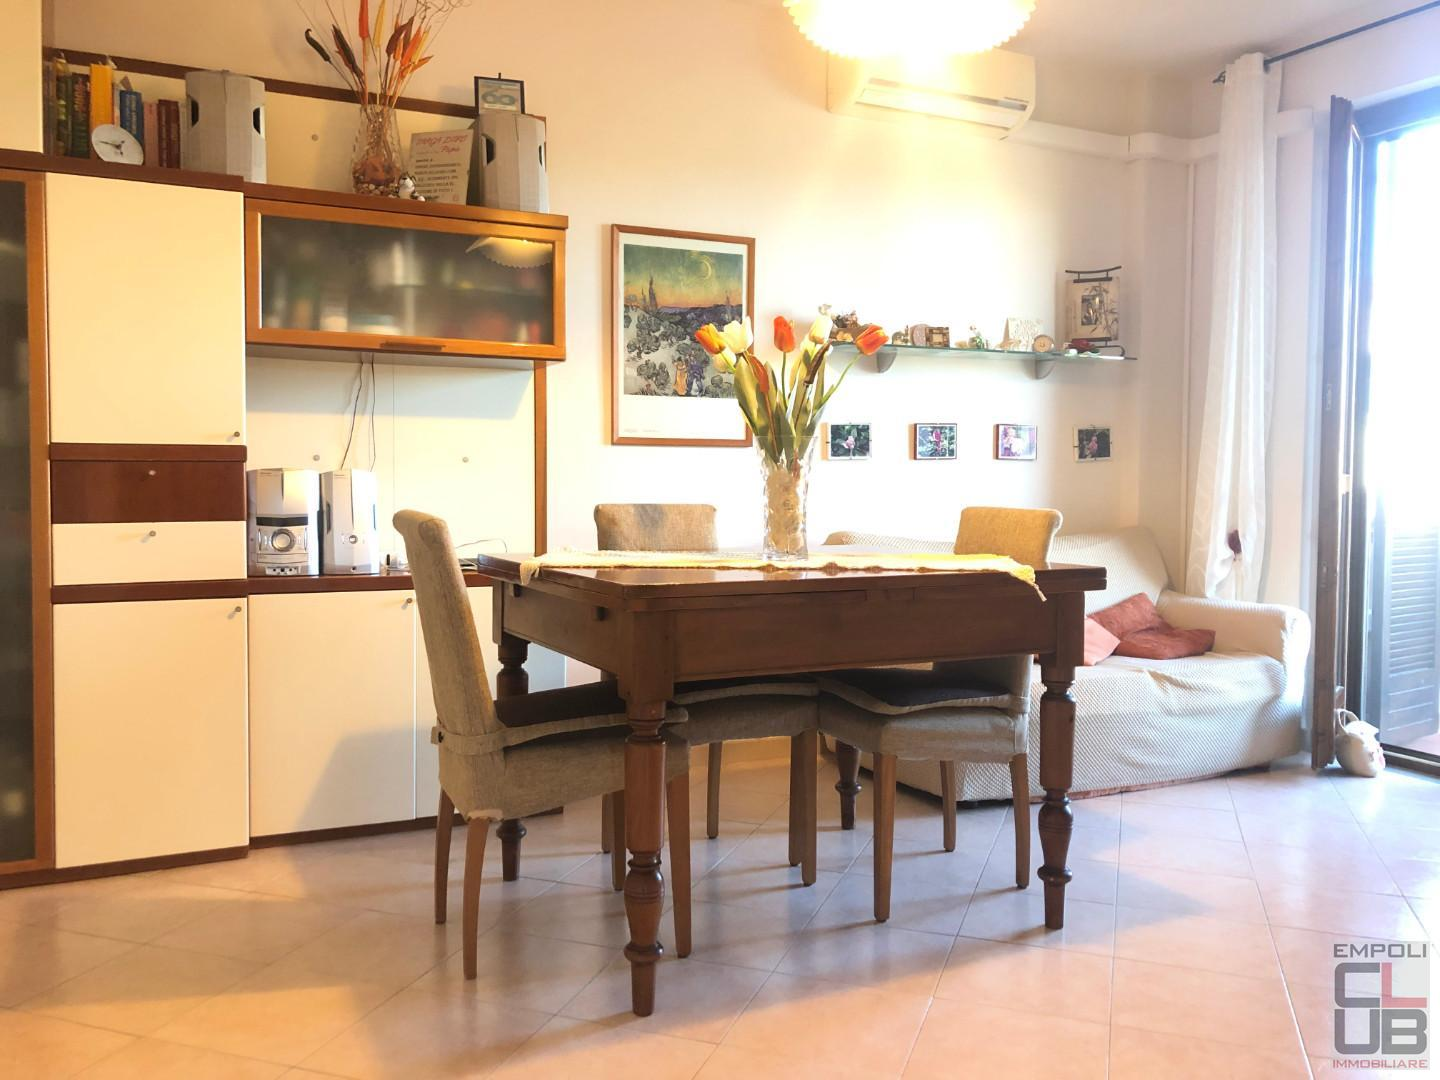 Duplex for sale in Empoli (FI)